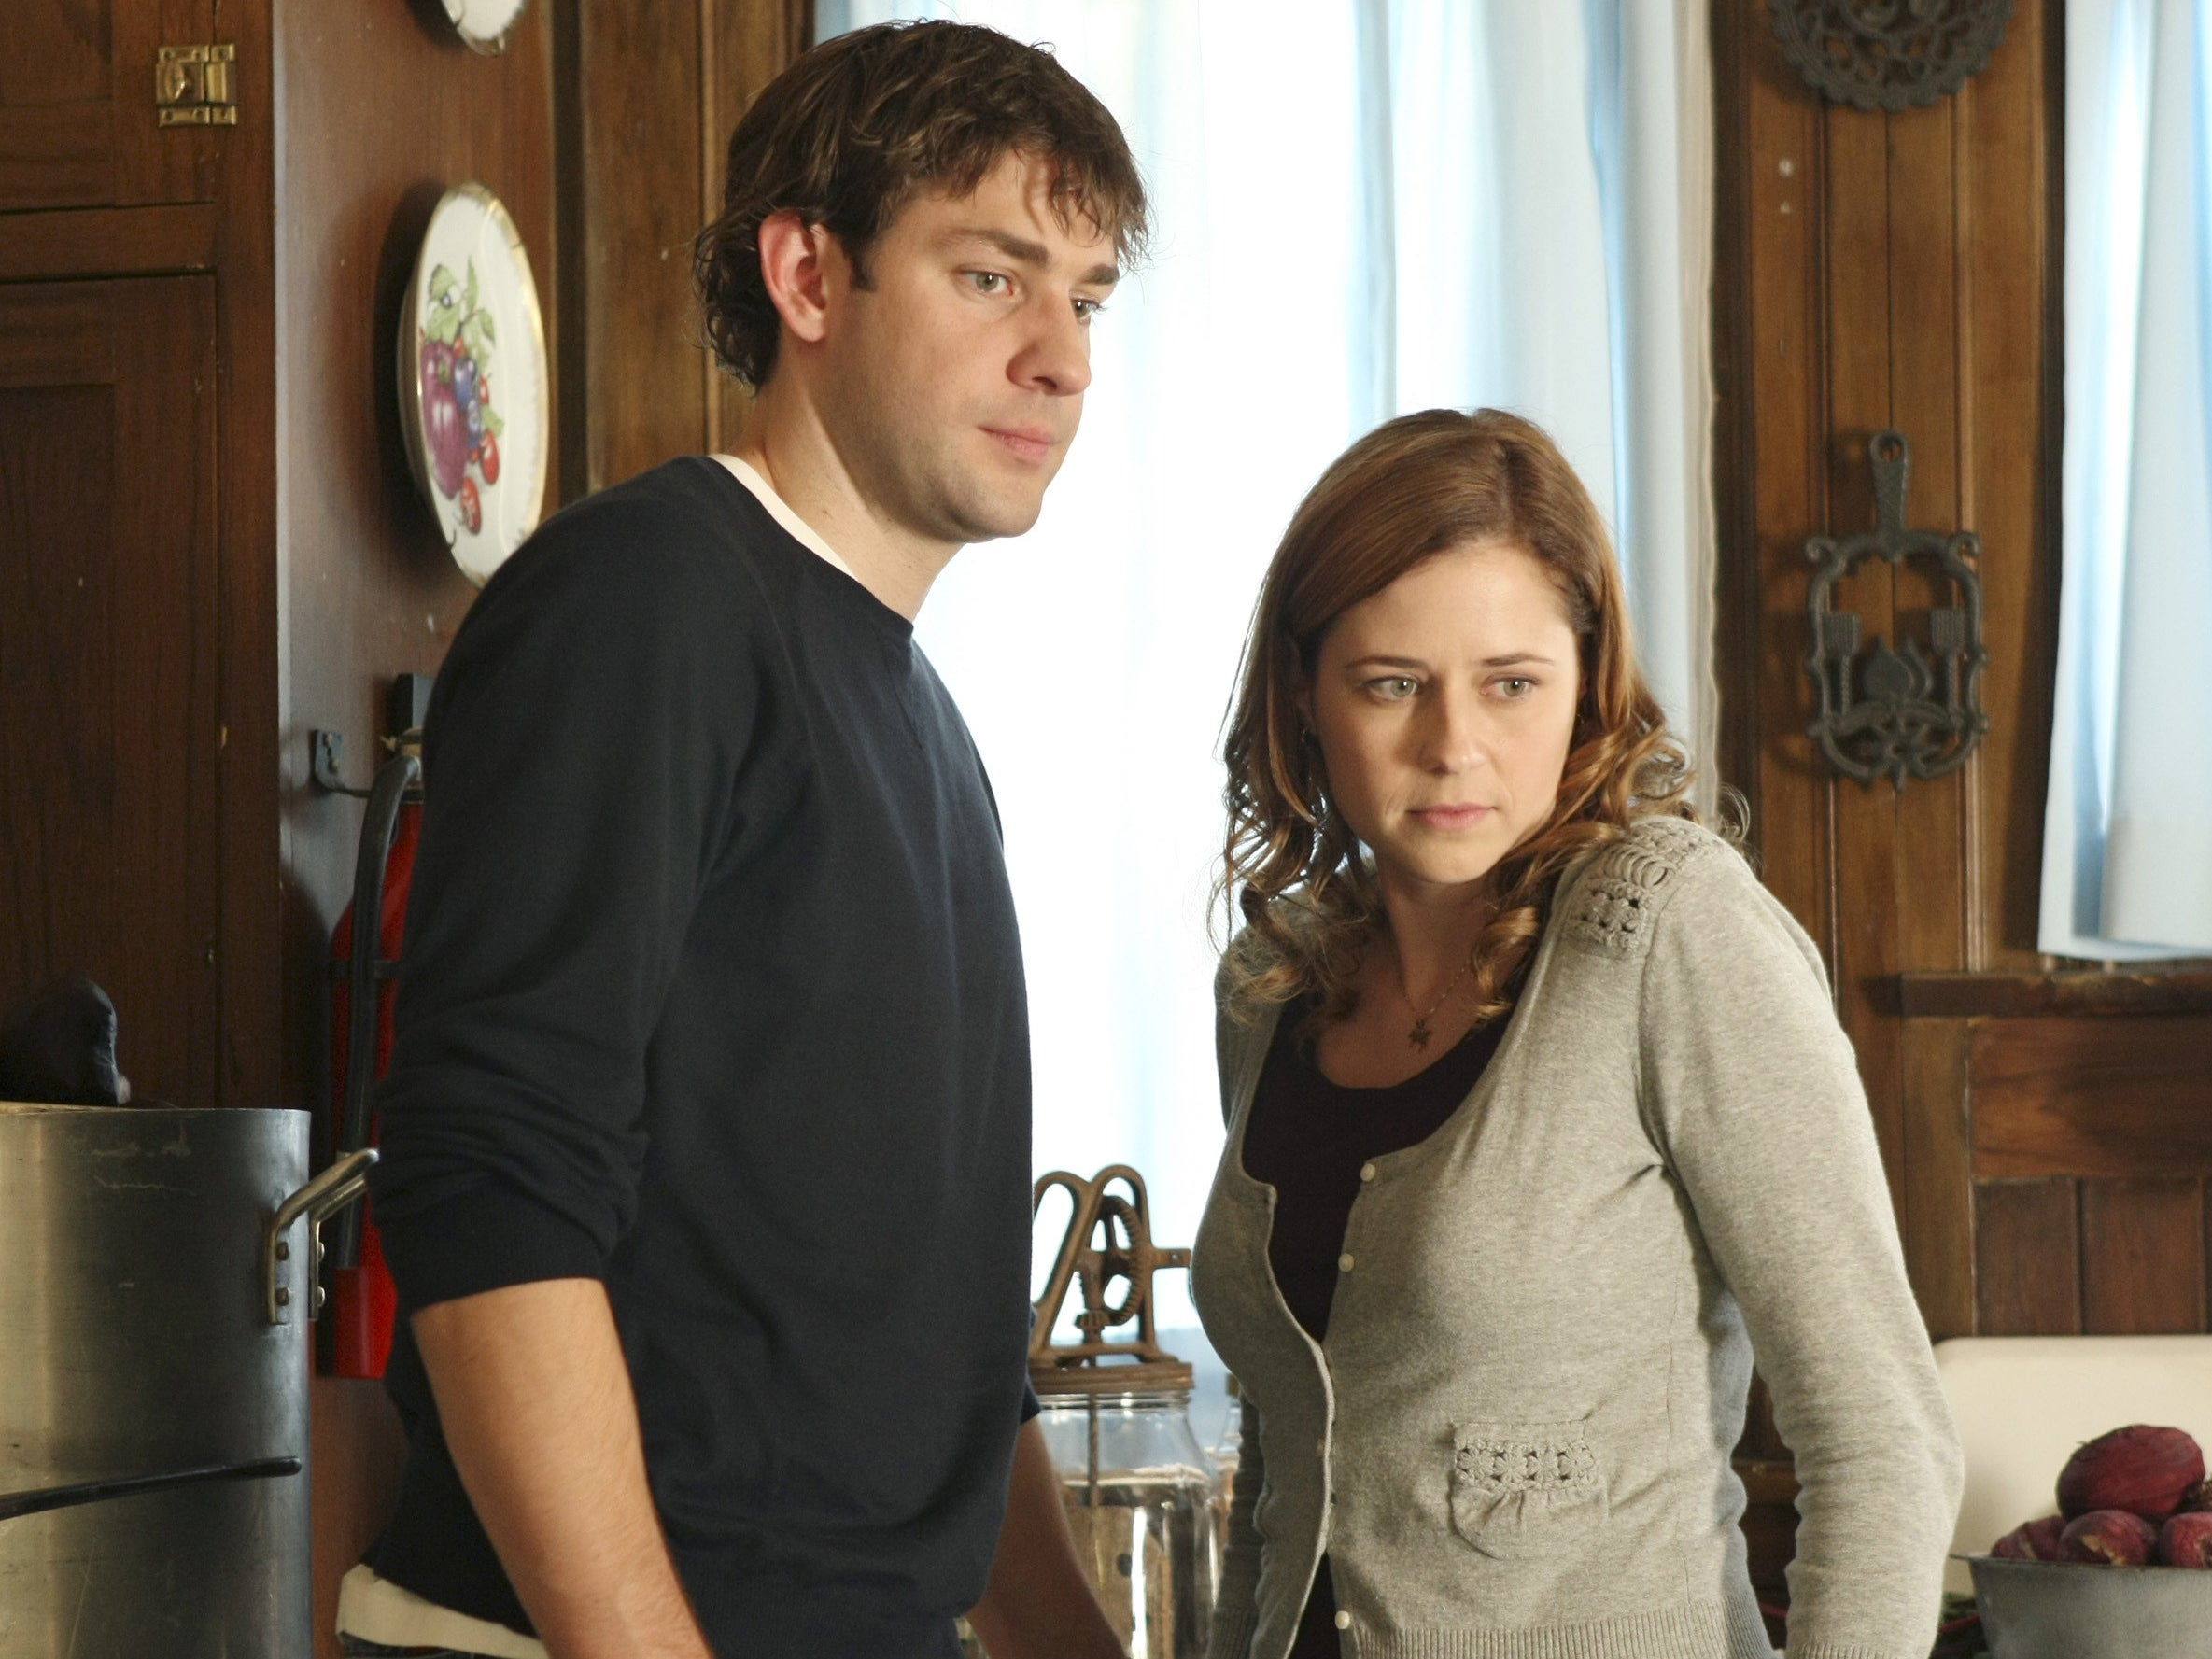 Jim and Pam look displeased